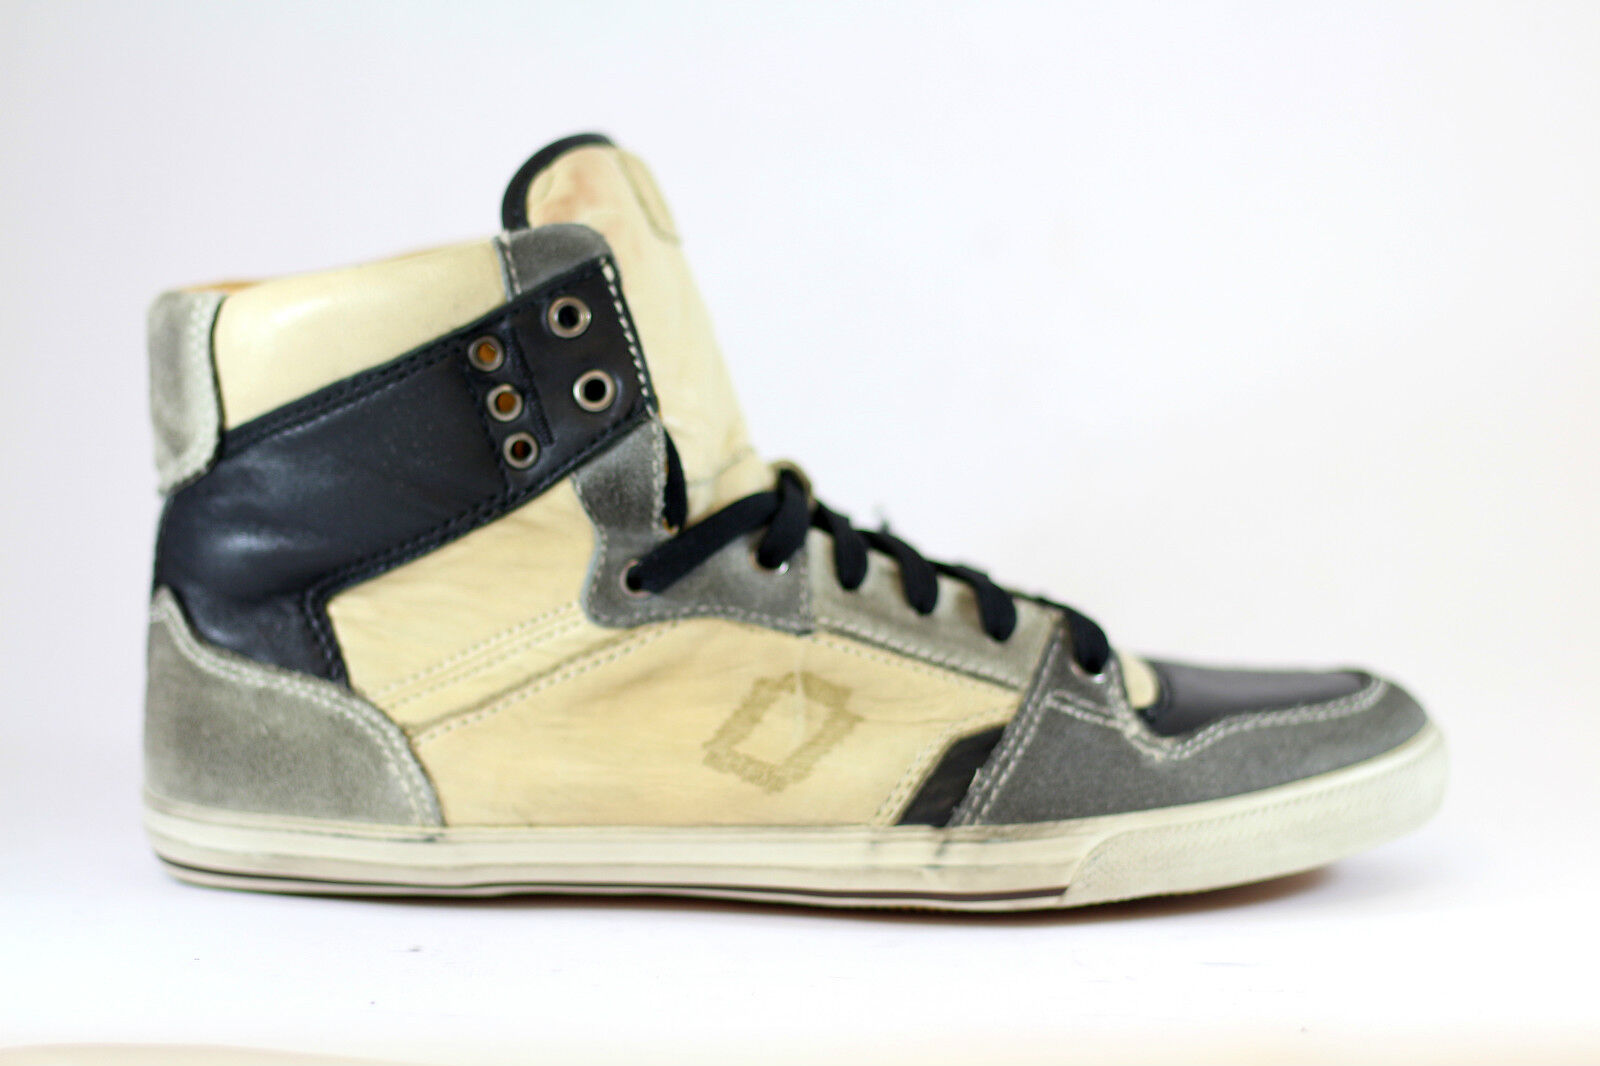 MONO leather high top sneakers - sneakers alte in pelle